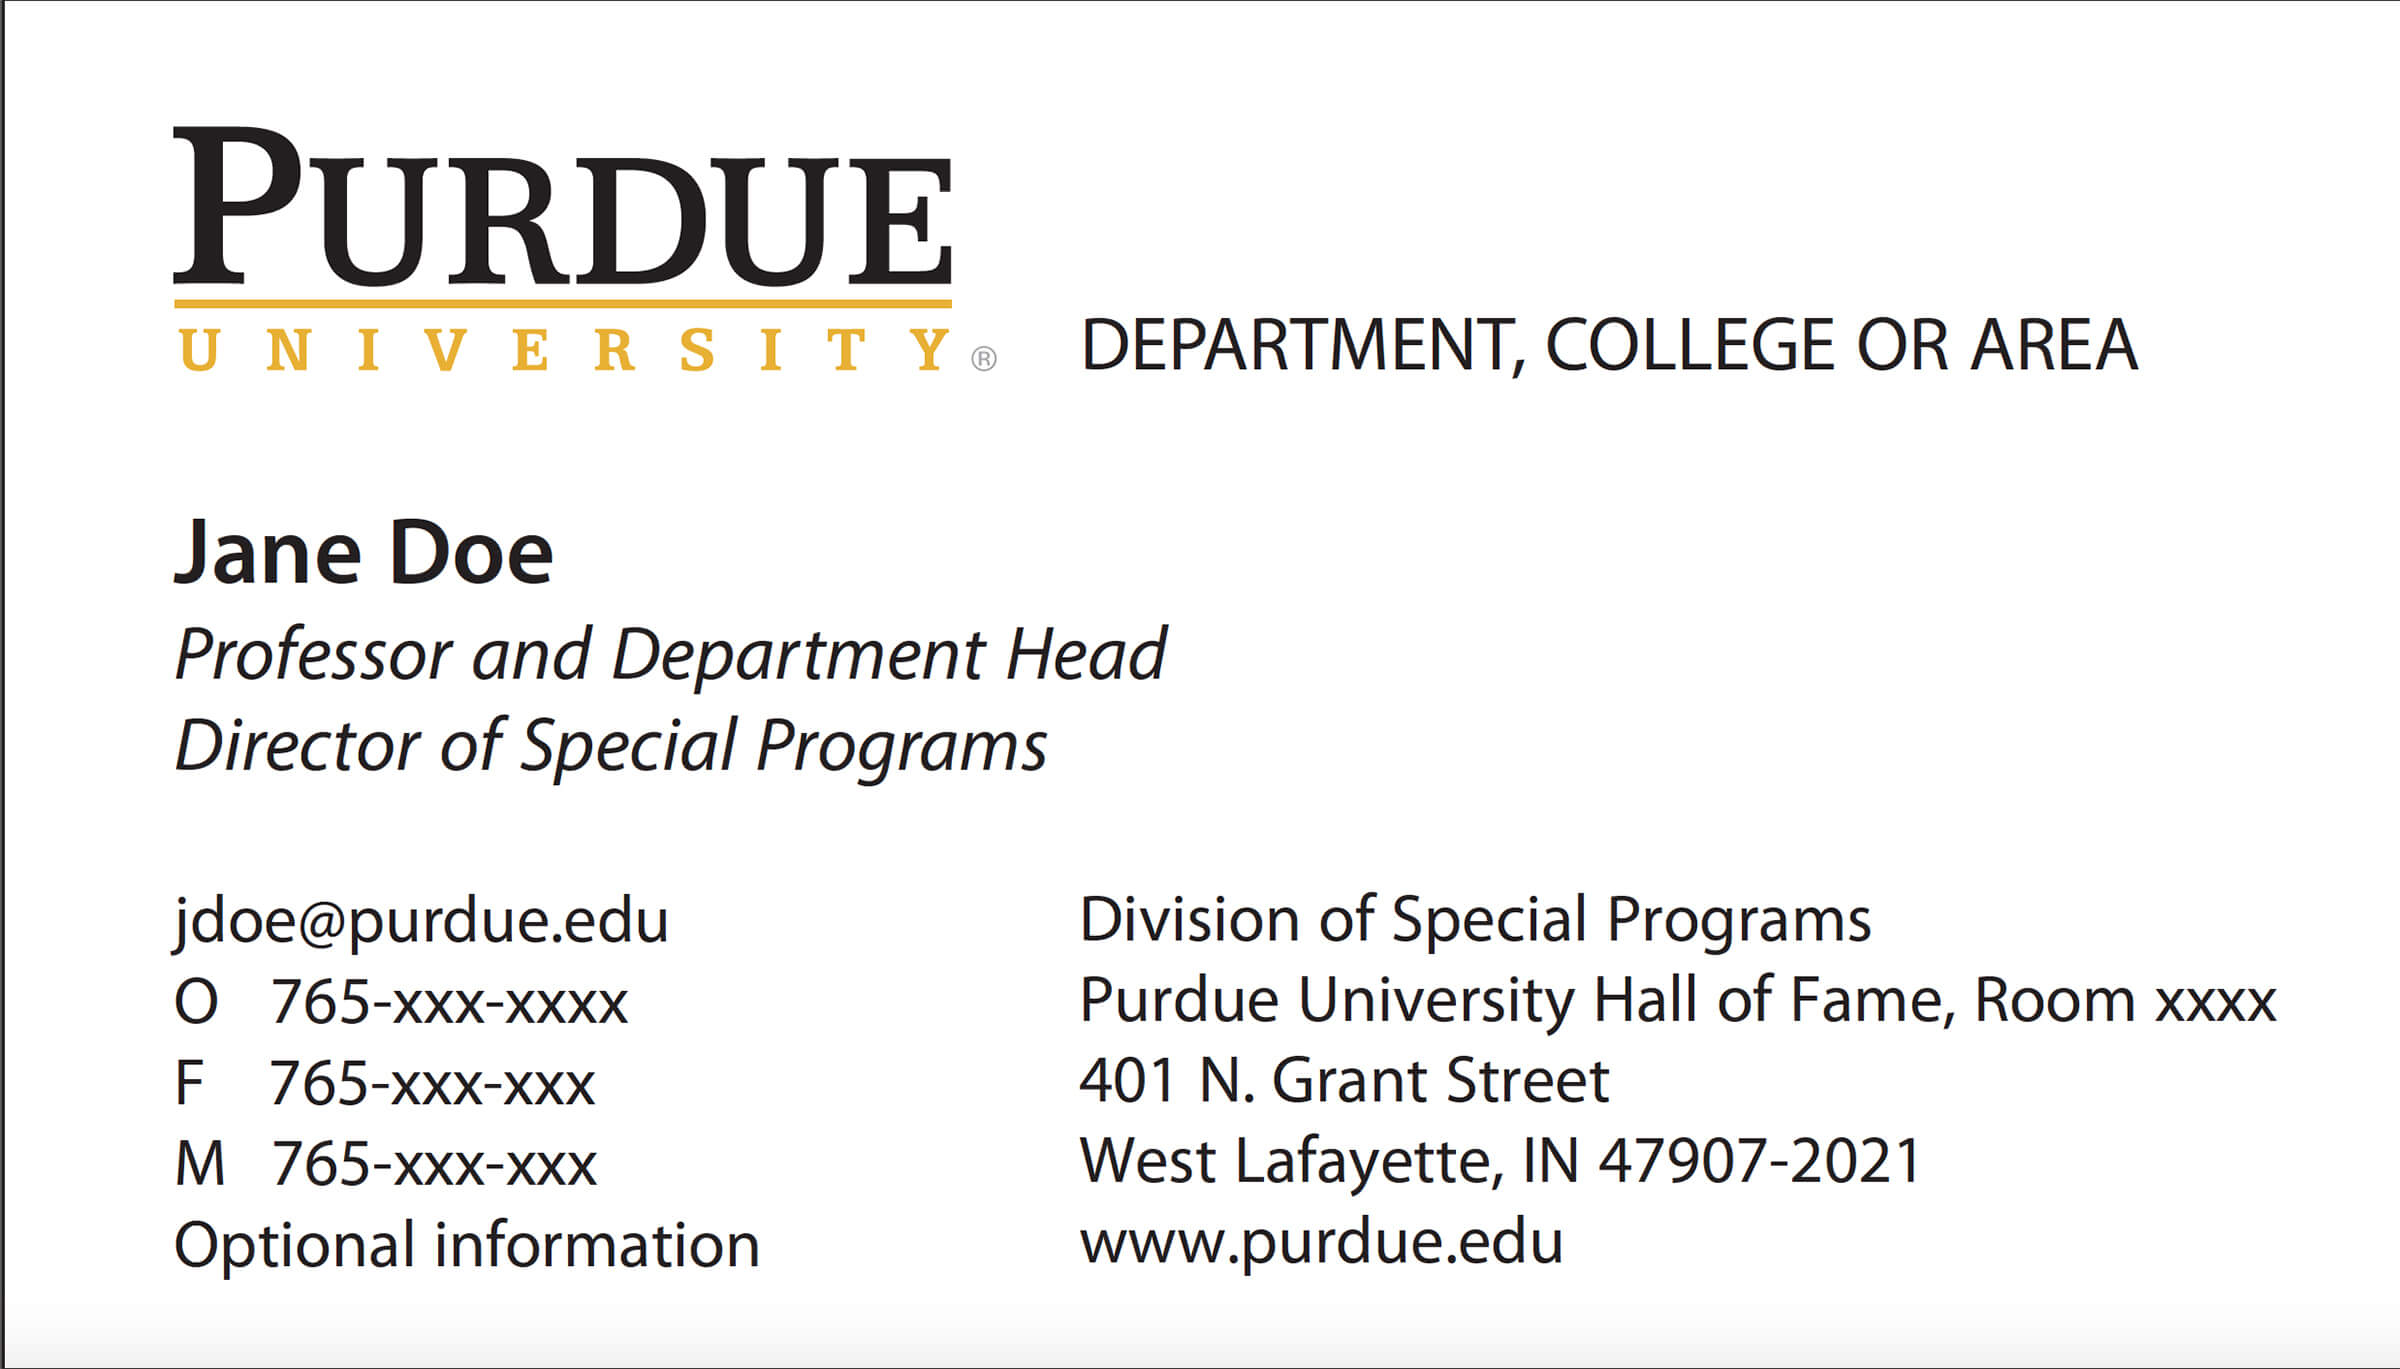 New Business Card Template Now Online - Purdue University News Intended For Graduate Student Business Cards Template